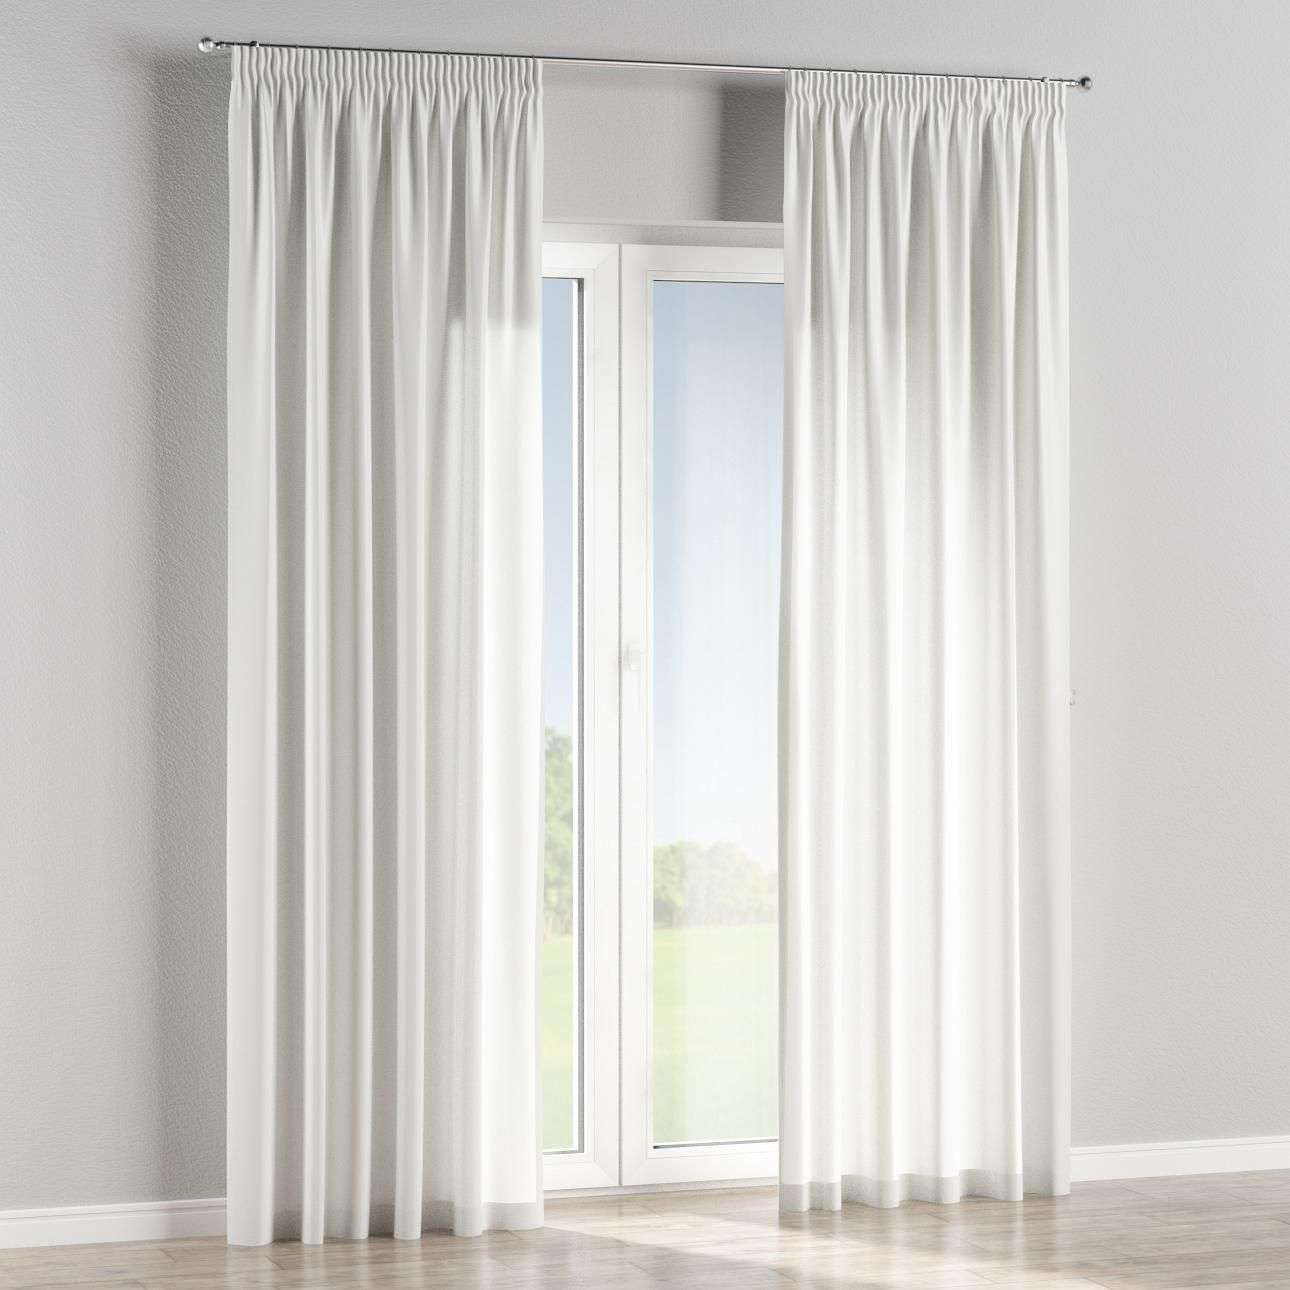 Pencil pleat lined curtains in collection Venice, fabric: 140-54